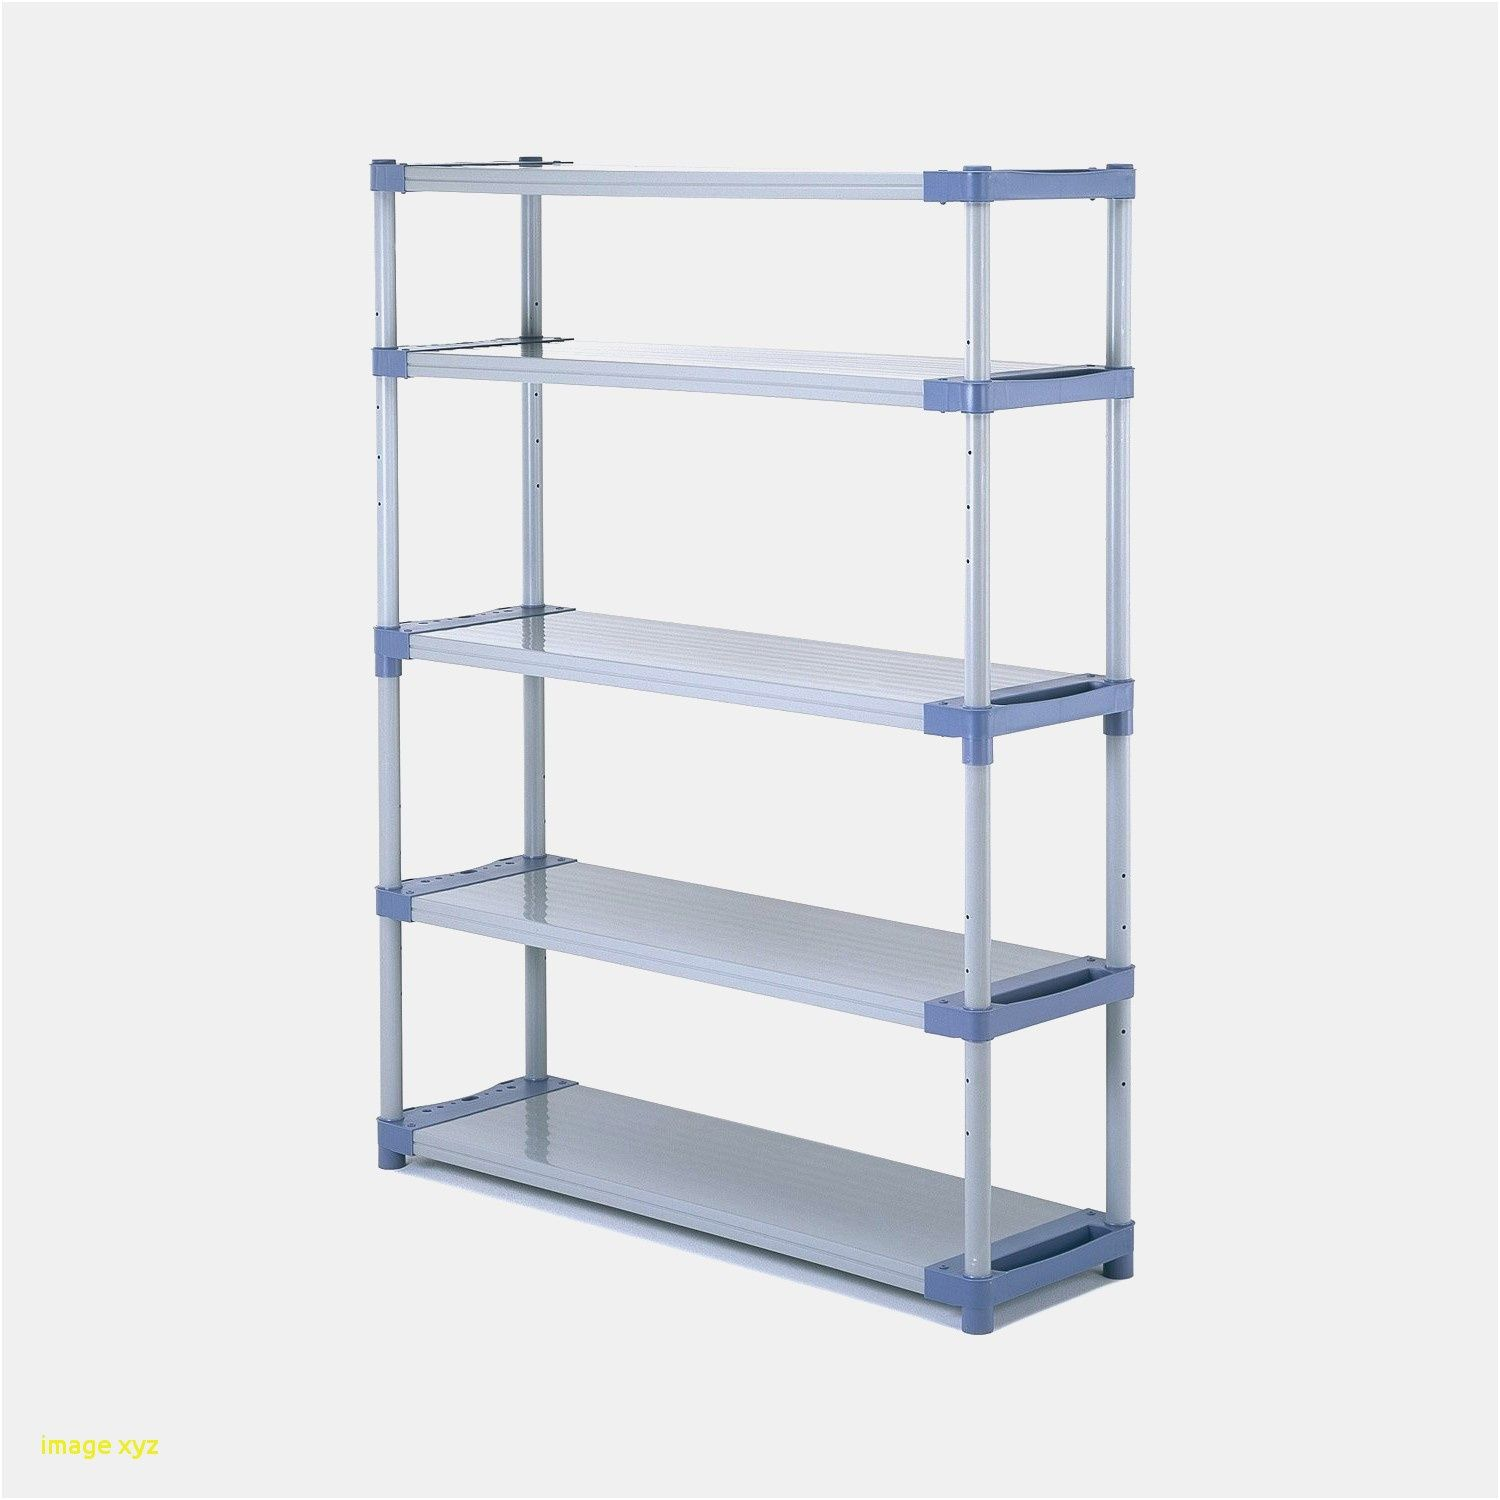 15 Remarquable Etagere Modulable Leroy Merlin Di 2020